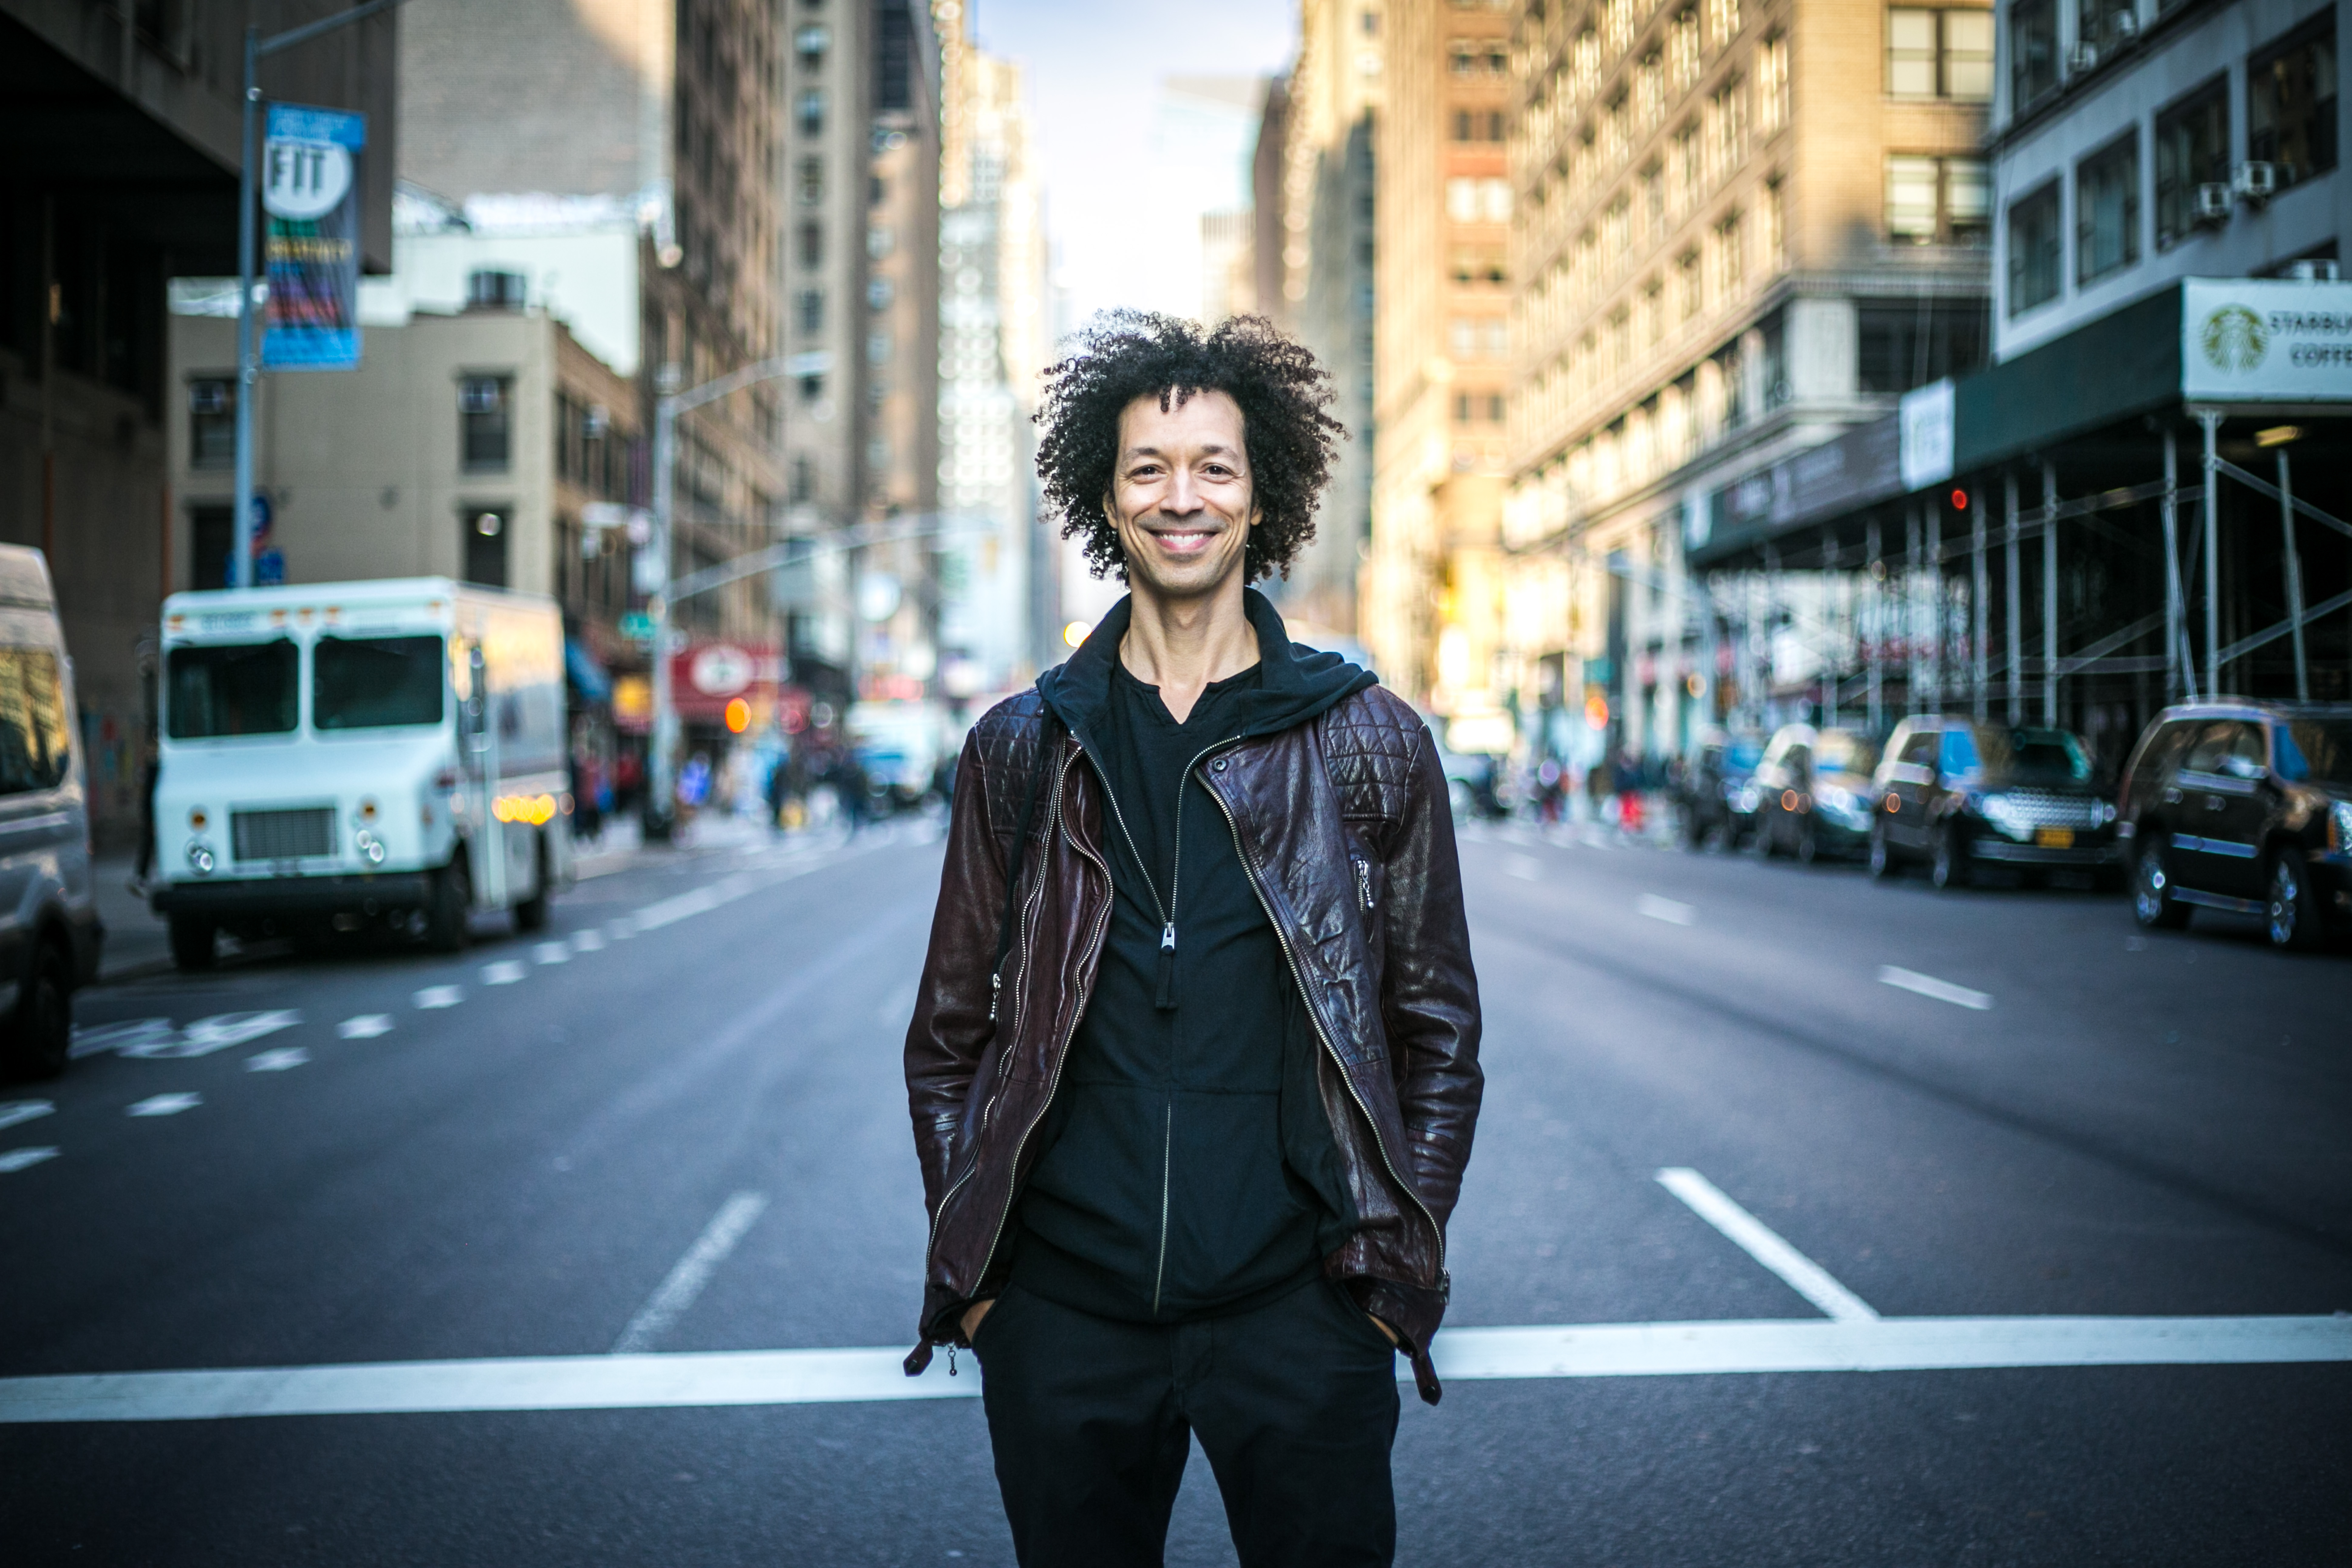 Zachary Alford, professional musician, in New York on Dec. 10, 2015. (Benjamin Chasteen/Epoch Times)